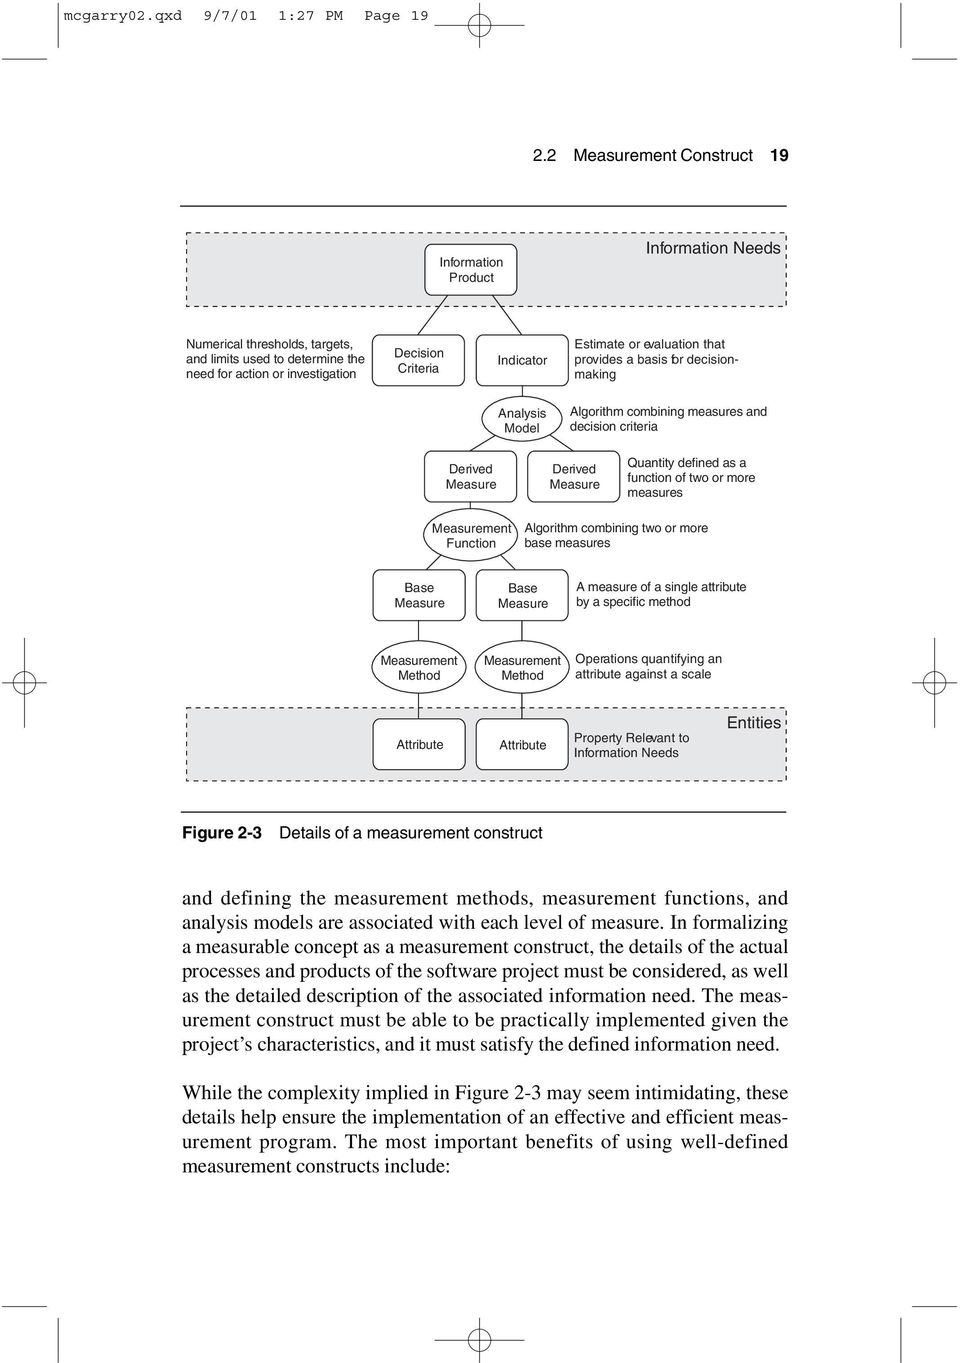 evaluation that provides a basis for decisionmaking Analysis Model Algorithm combining measures and decision criteria Derived Measure Derived Measure Quantity defined as a function of two or more